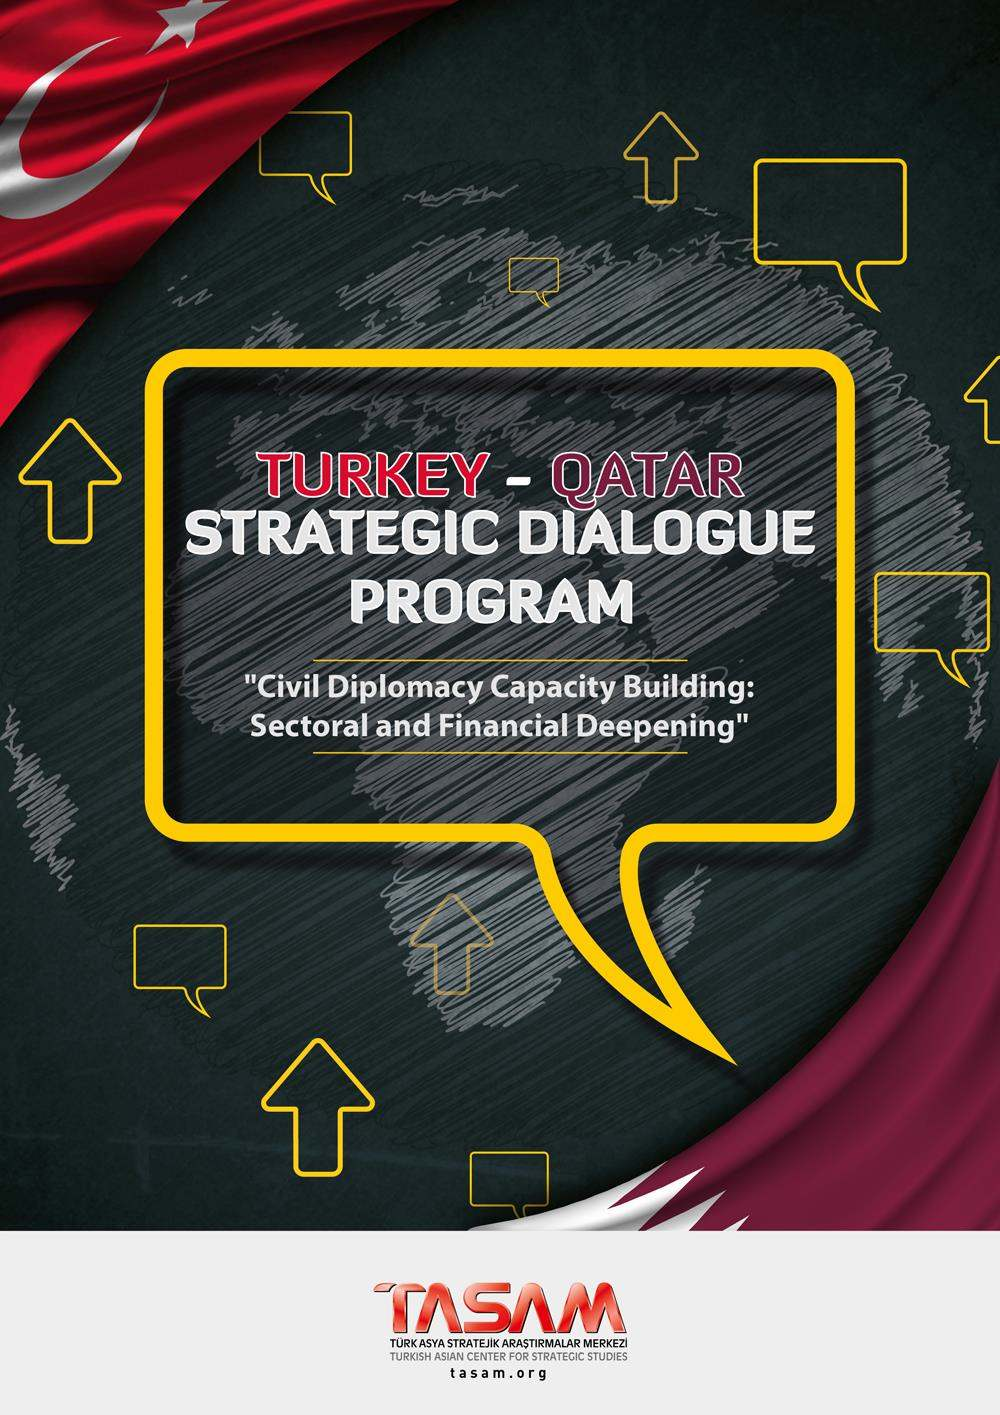 Turkey - Qatar Strategic Dialogue Program